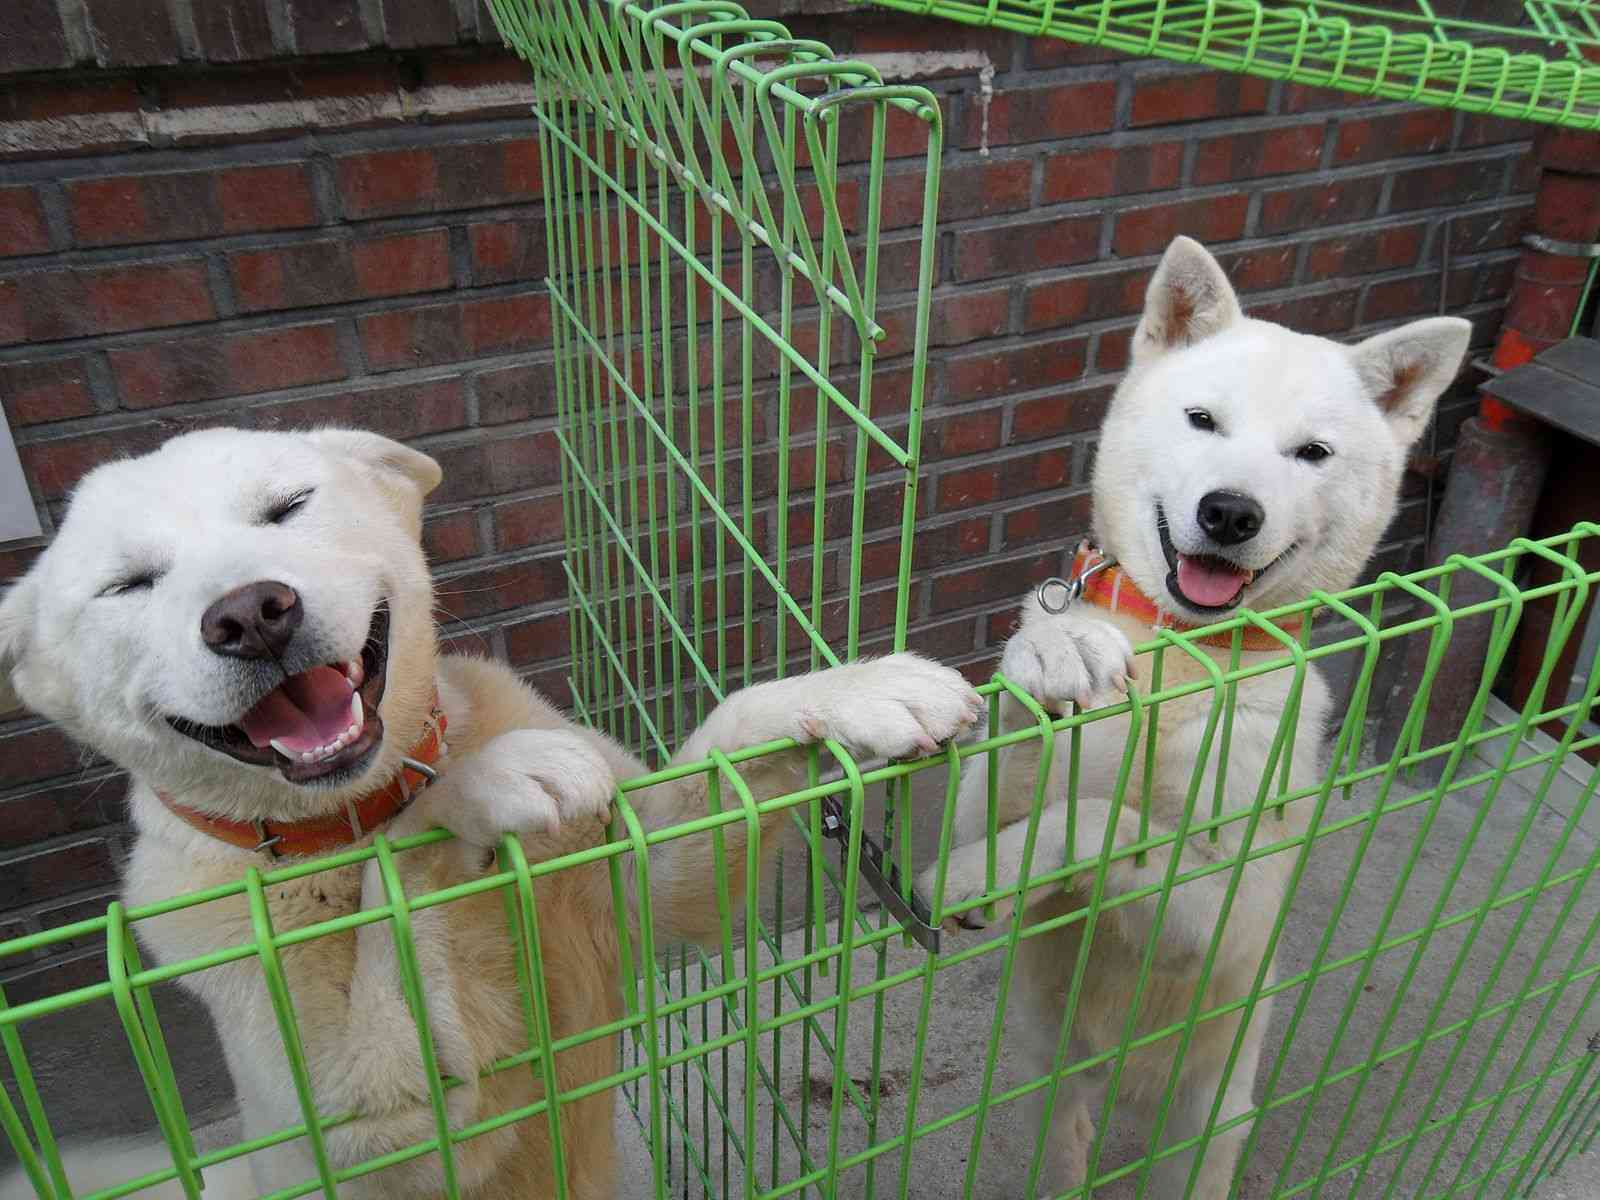 Two pungsan dogs outside